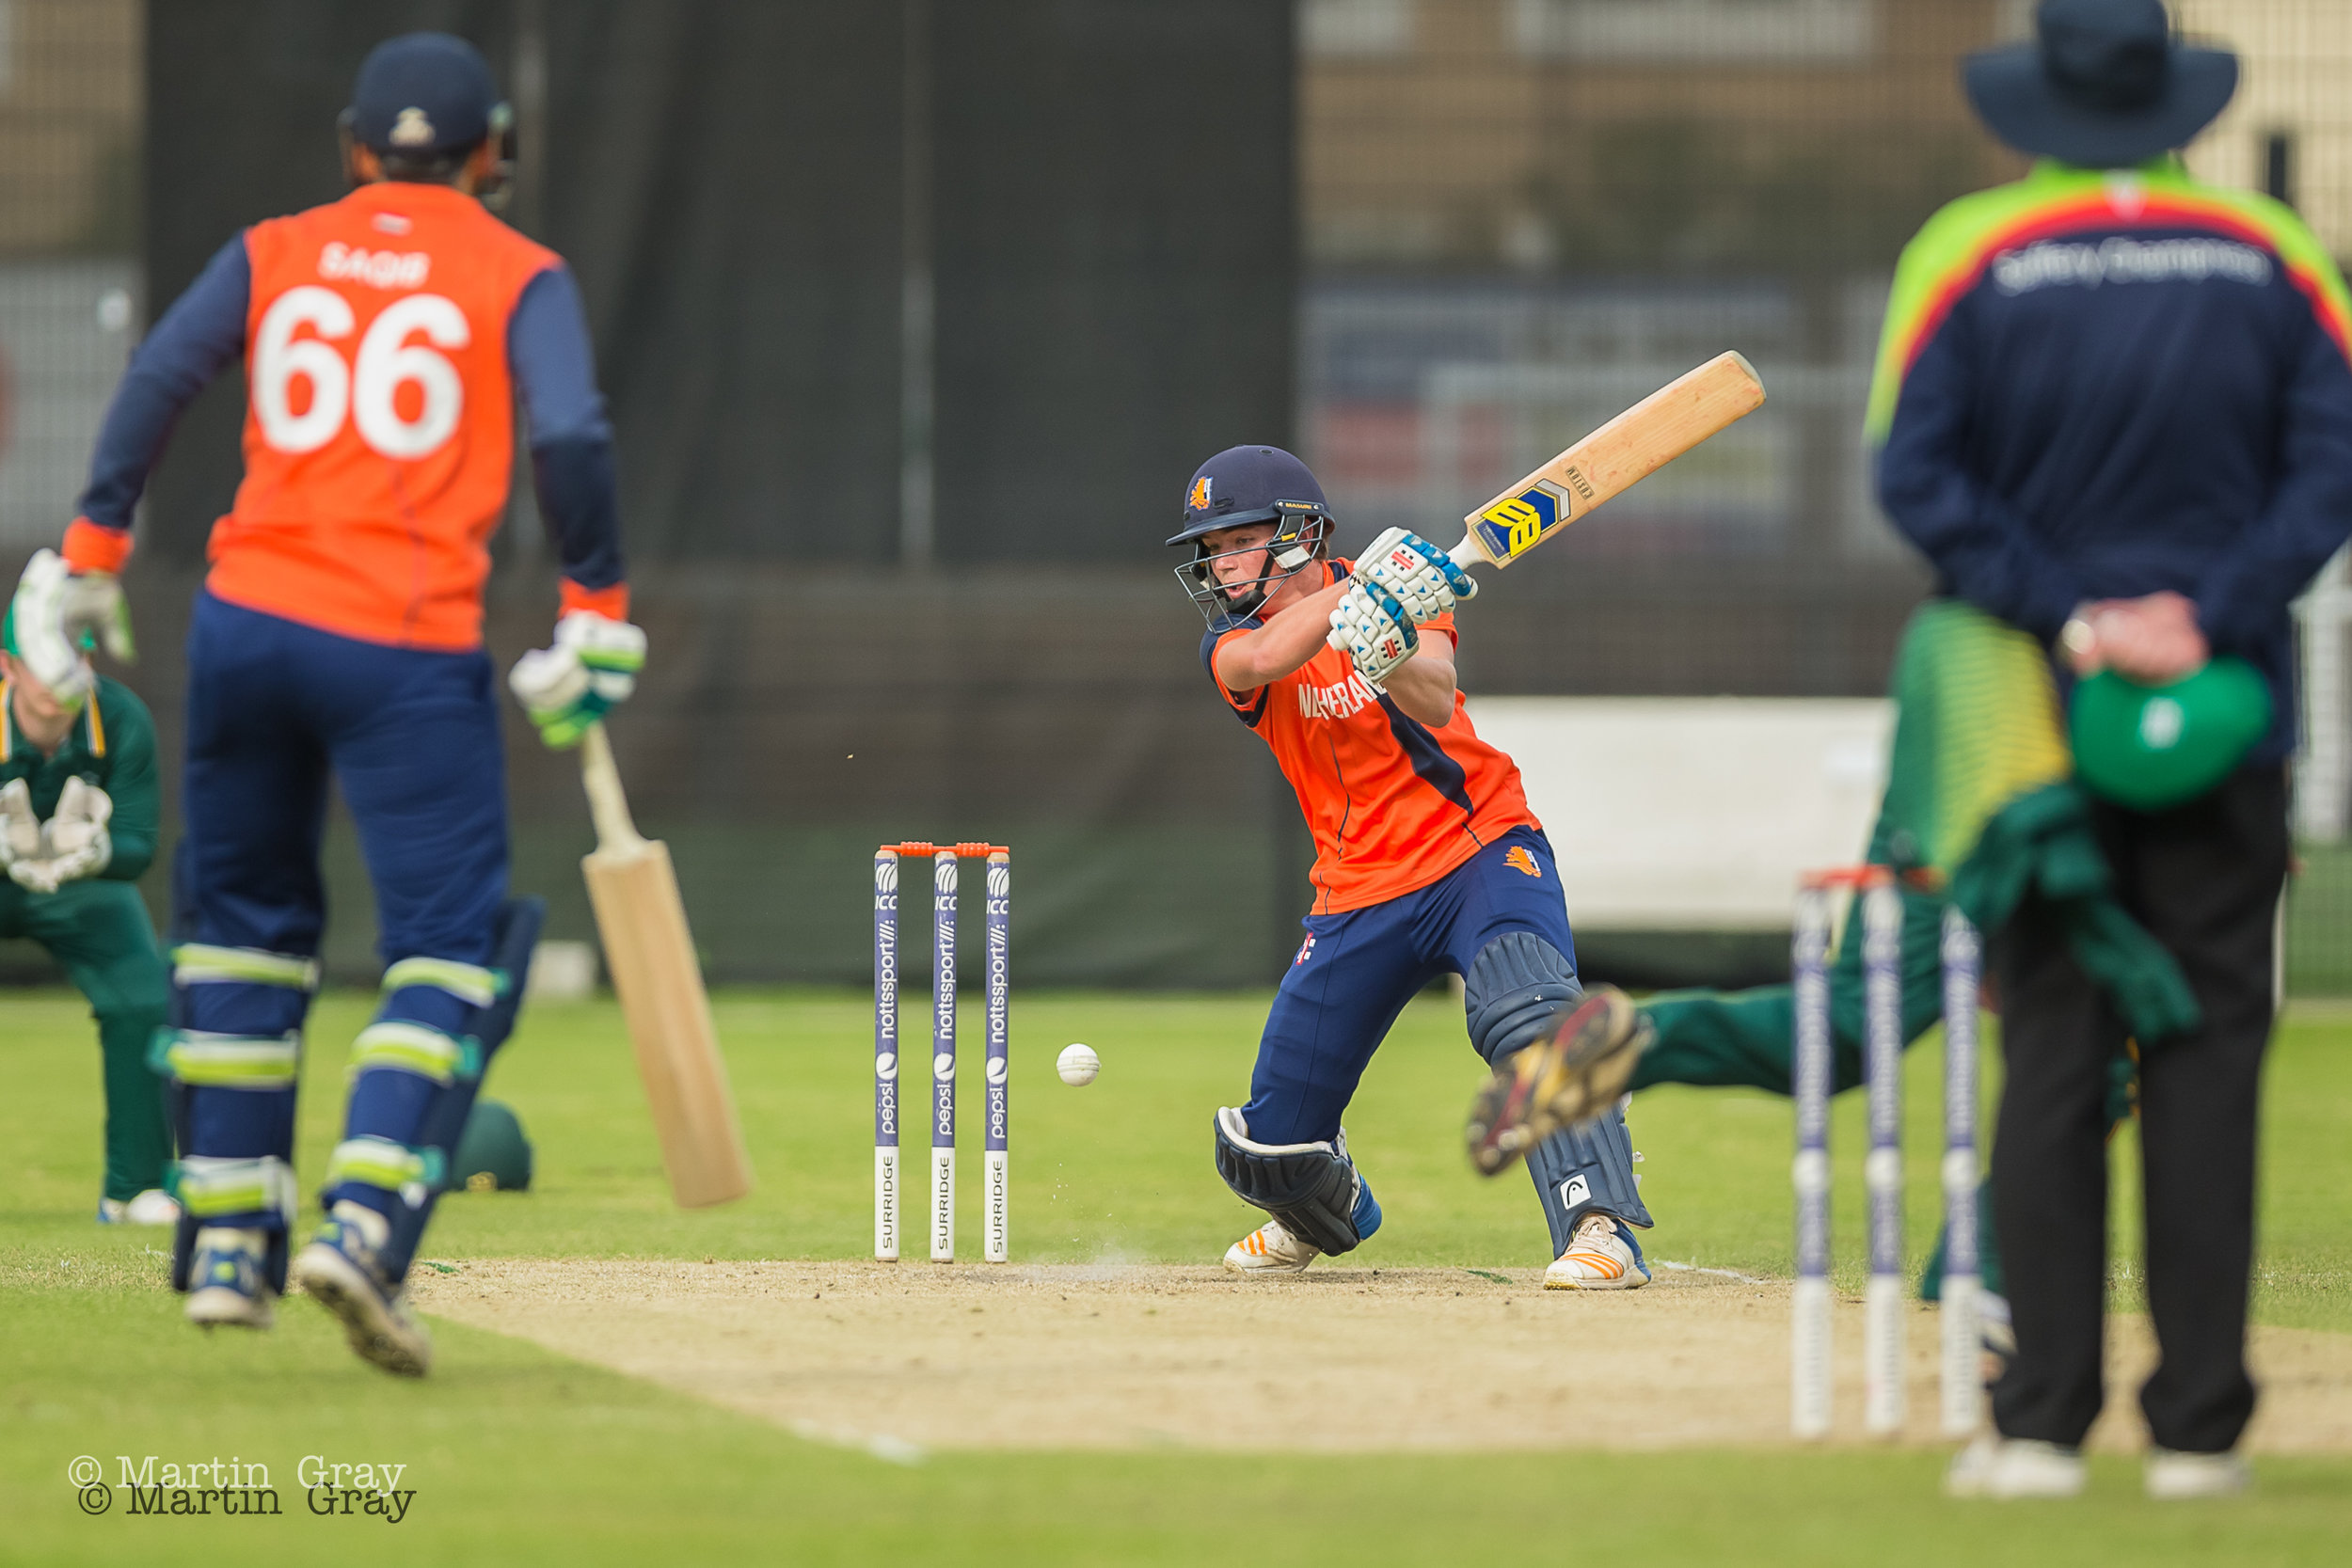 A gallery of the three Guernsey v Netherlands T20 games played at KGV Playing Fields over the weekend 28th-30th April...